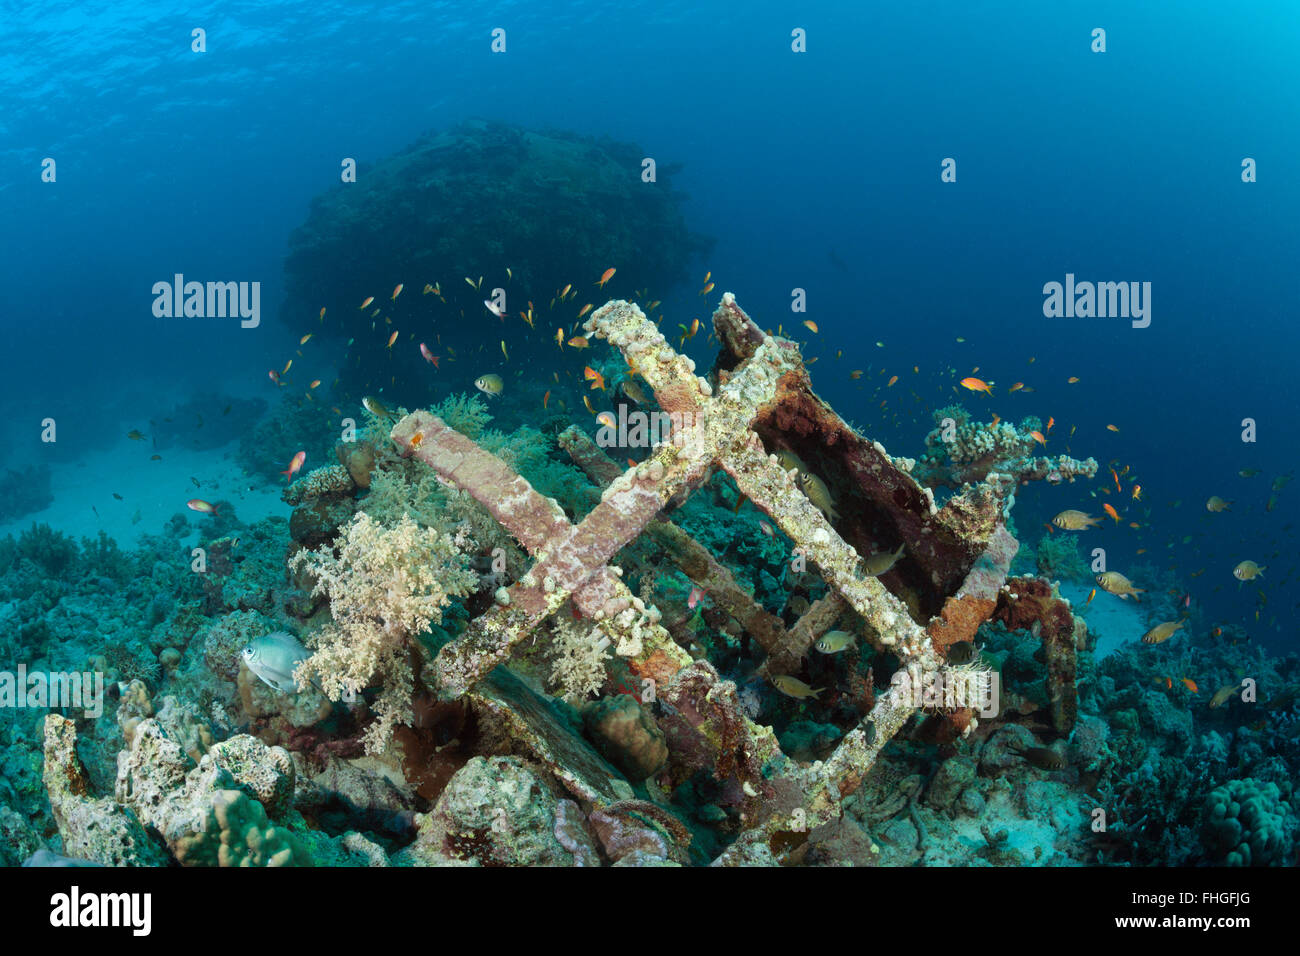 Remains of Cousteaus Underwater Habitat Precontinent II, Shaab Rumi, Red Sea, Sudan - Stock Image